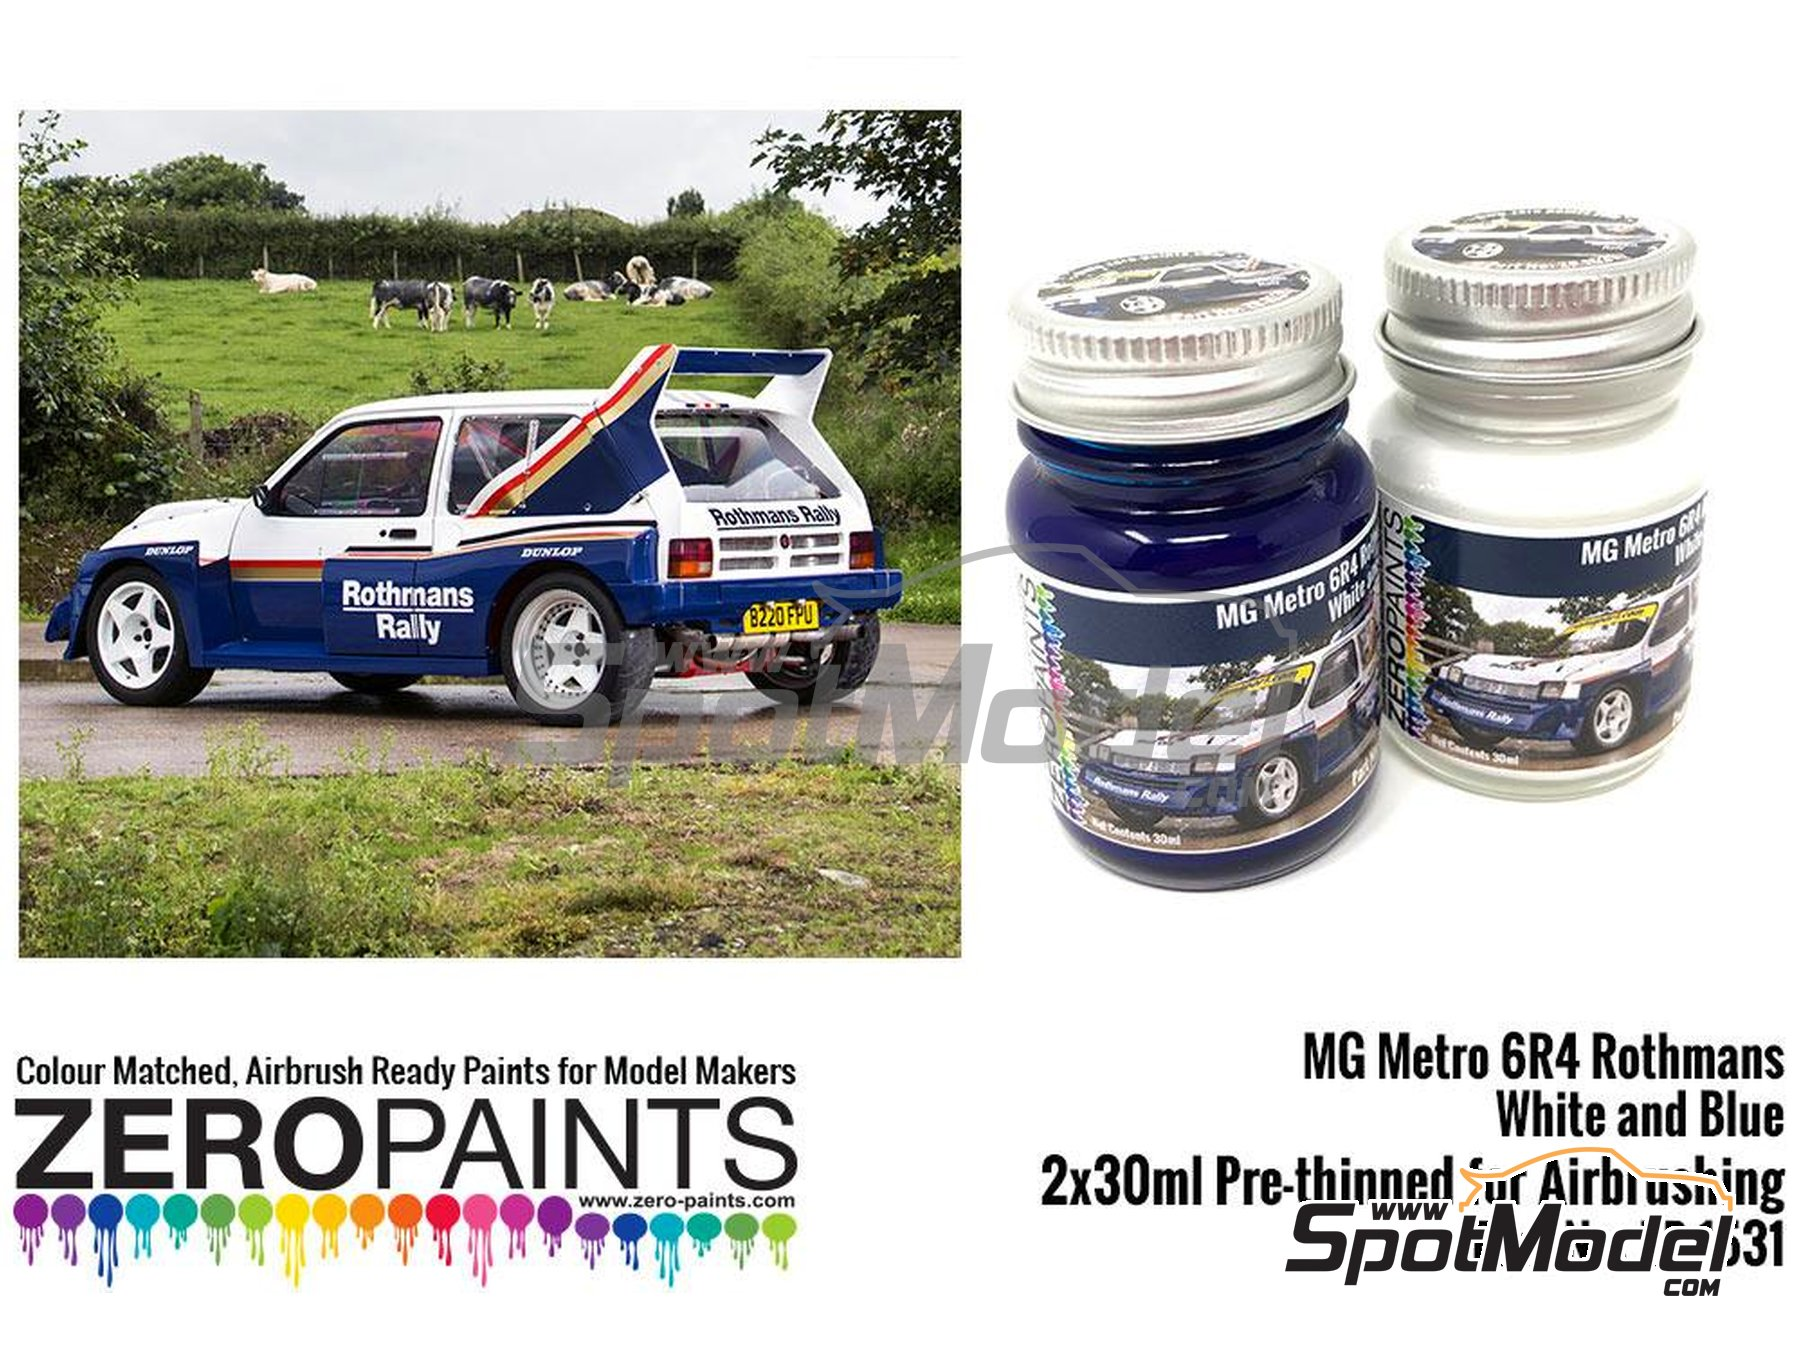 Image 1: MG Metro 6R4 Computervision white and blue - 2 x 30ml | Paints set manufactured by Zero Paints (ref. ZP-1530)